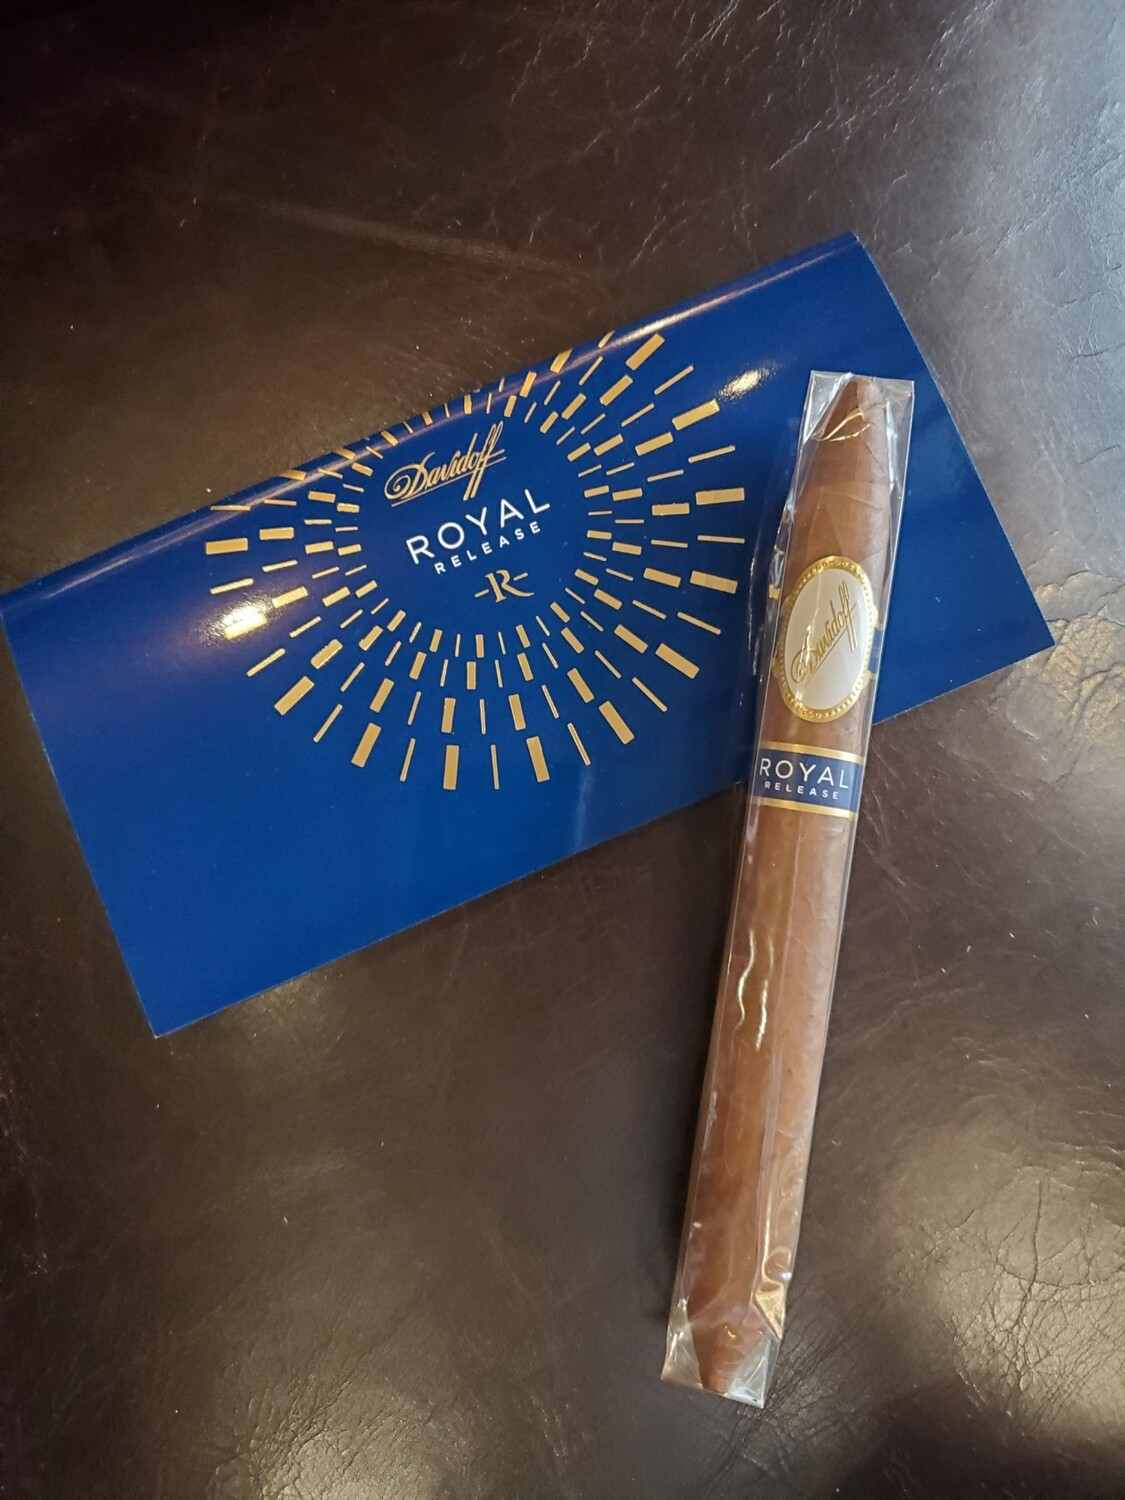 Davidoff Royal Release Solomon - Box 10